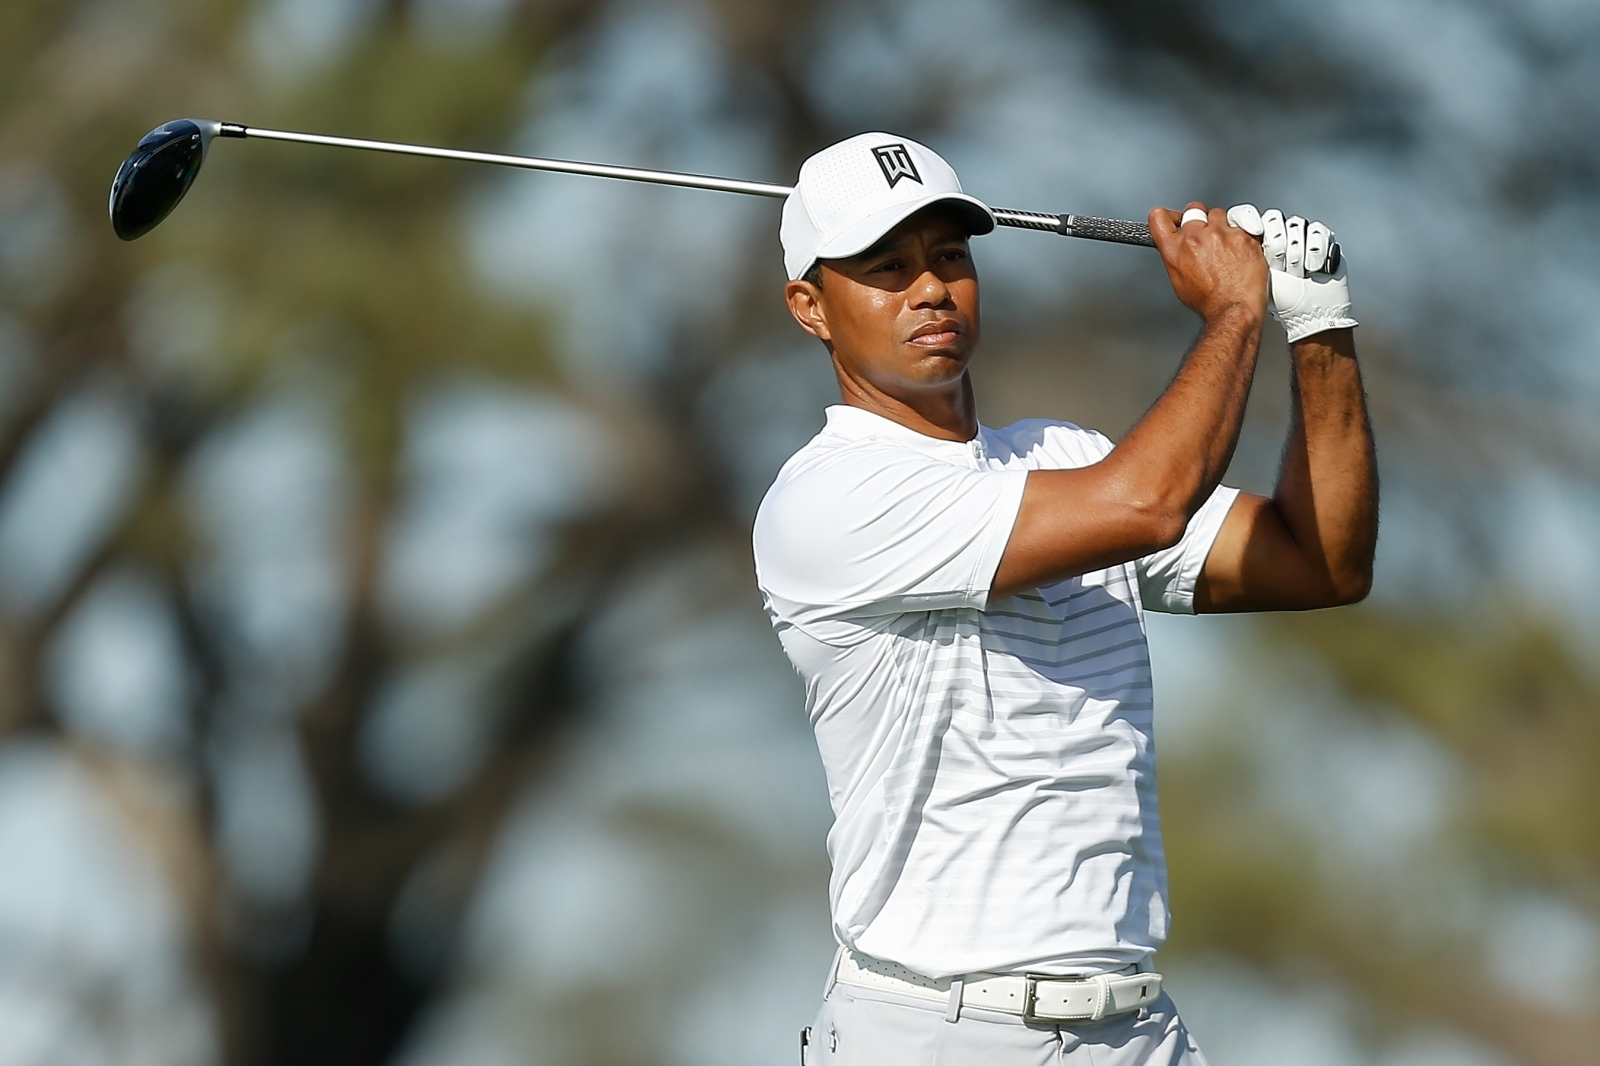 Tiger Woods to play with Rory McIlroy, Justin Thomas in Riviera return